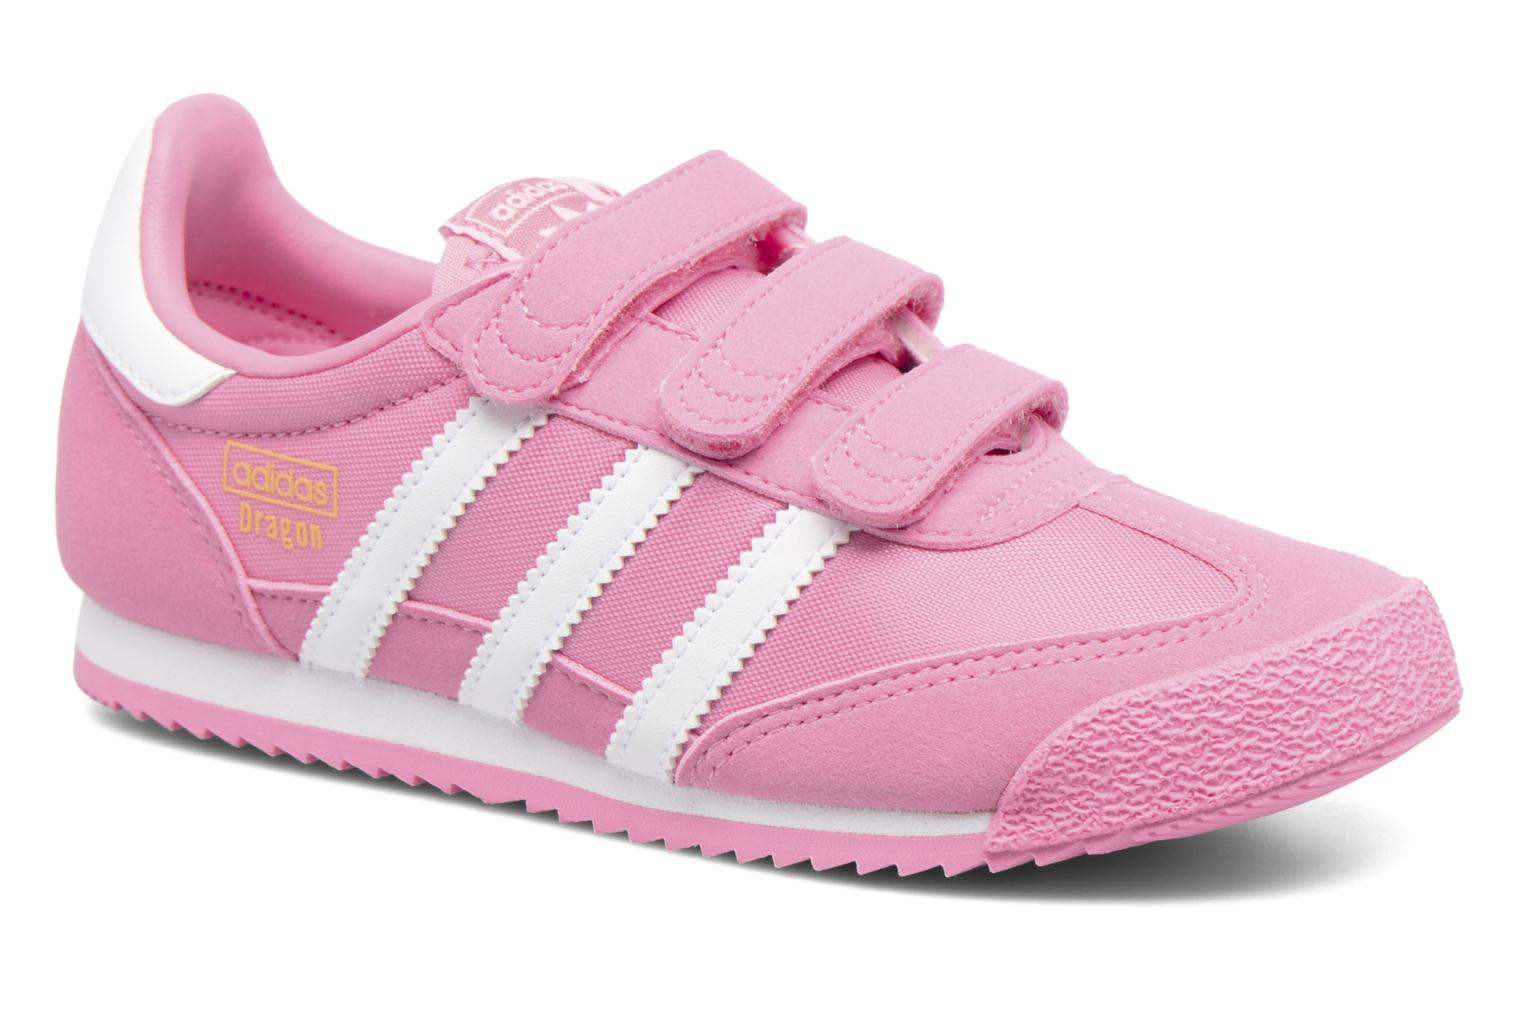 6d77eb3ce83 Adidas dragon | Shop for cheap Children's Footwear and Save online